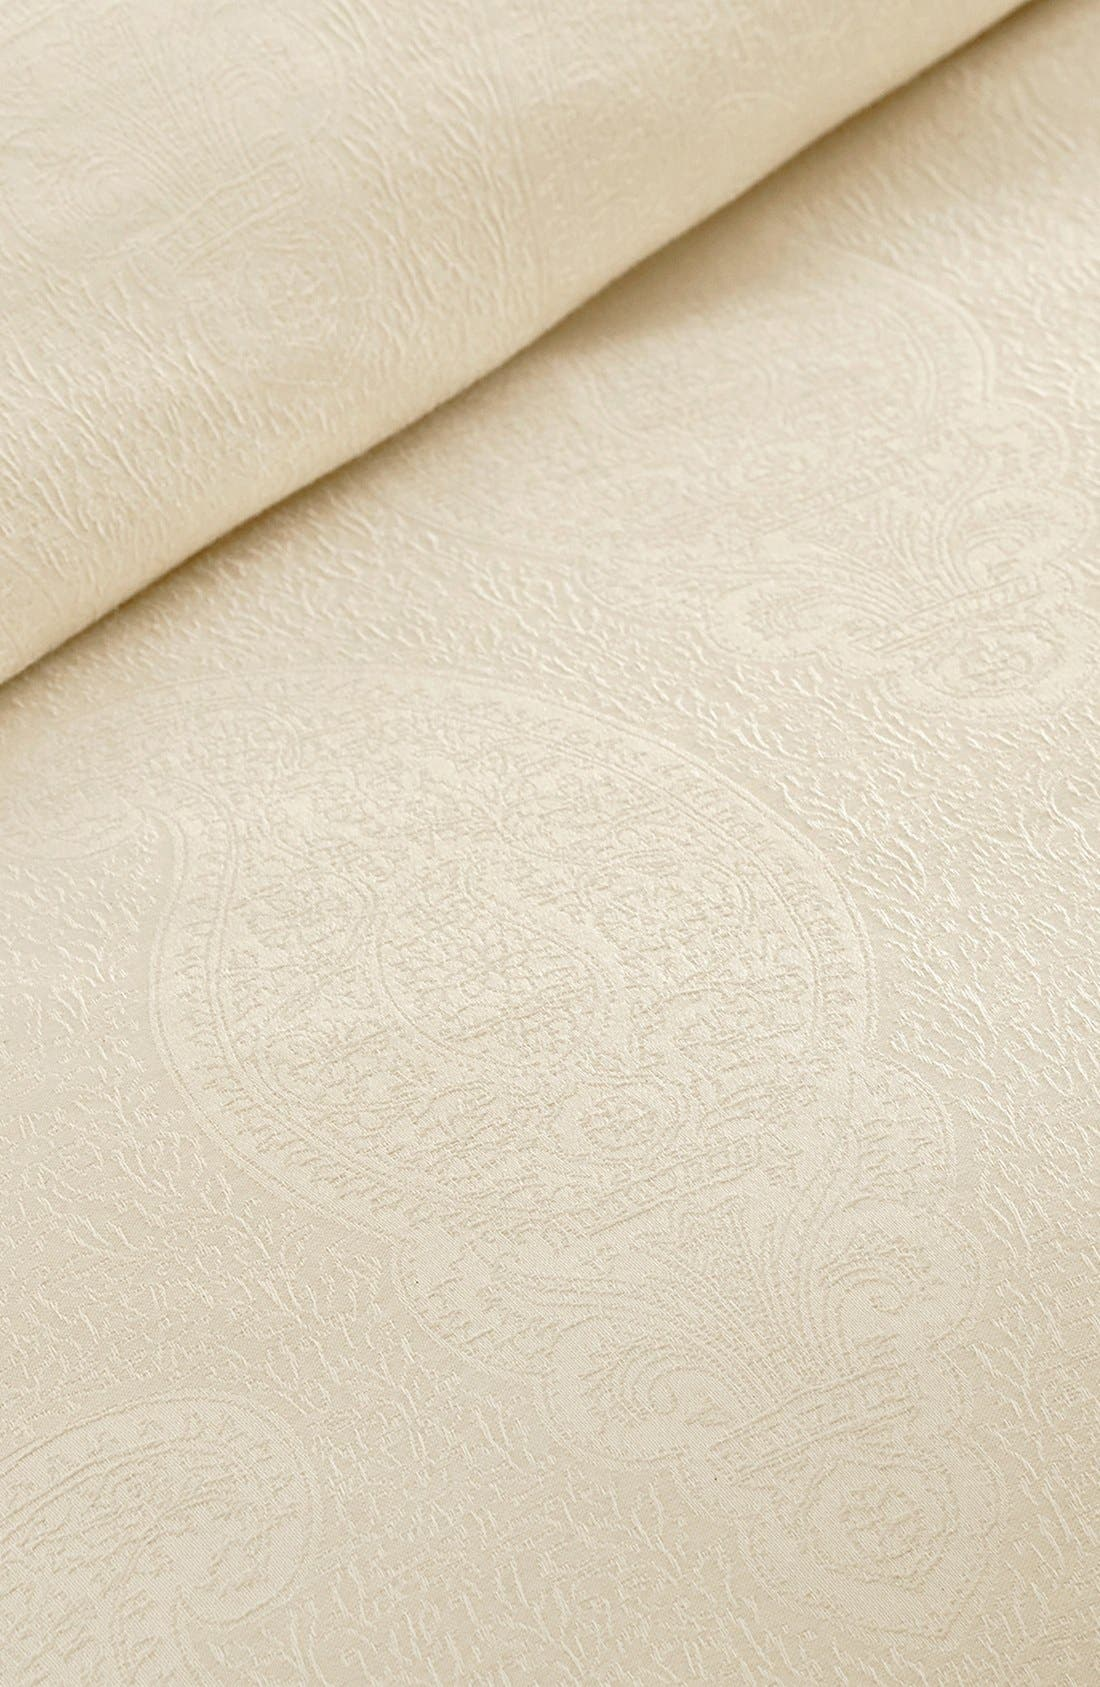 Alternate Image 2  - Welspun USA 'Crowning Touch' Duvet Cover Set